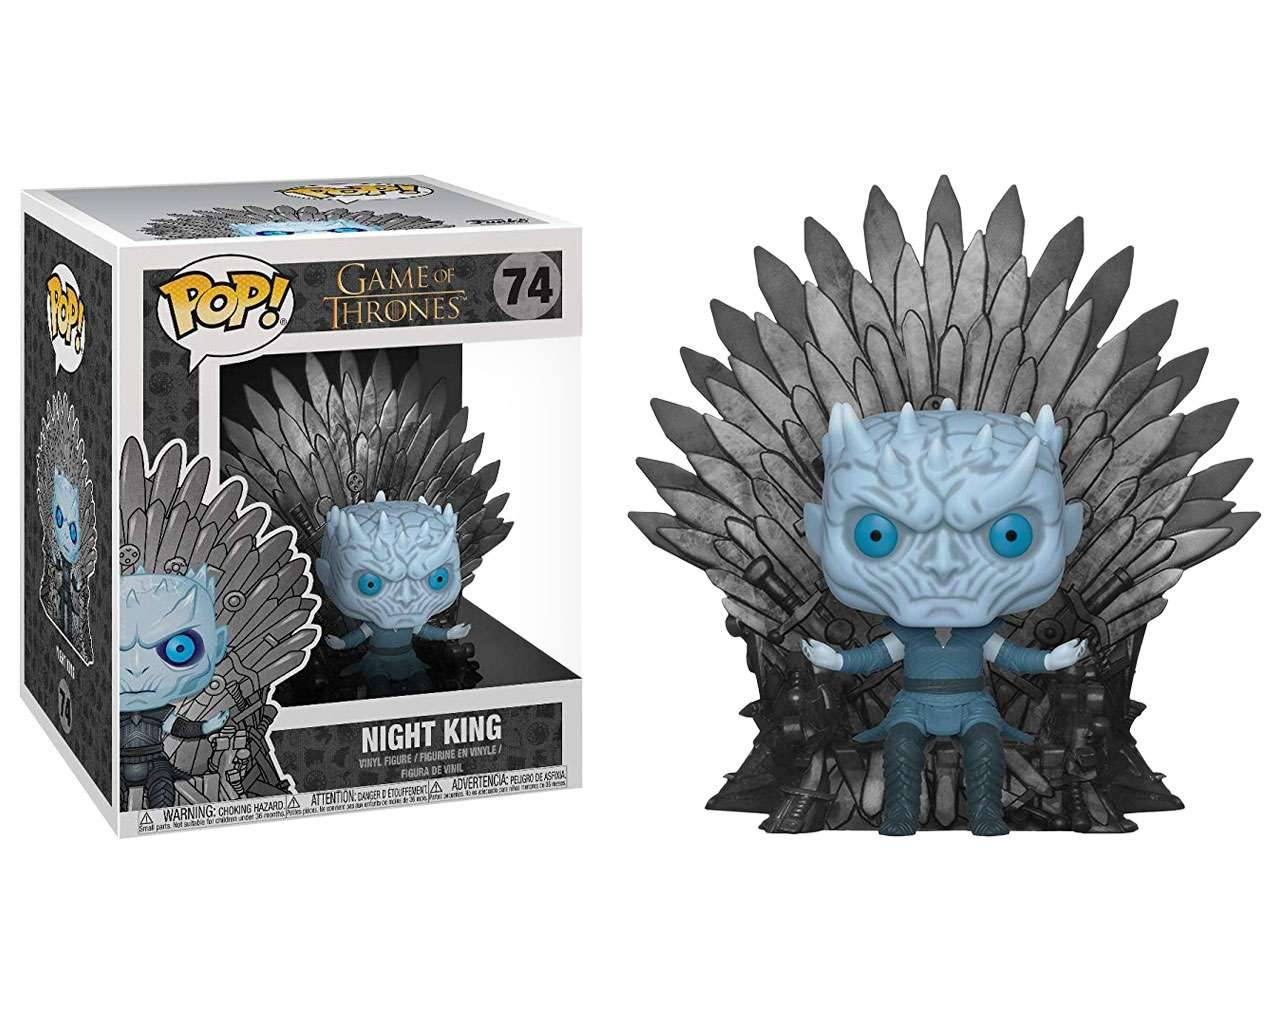 Night King (Throne) Pop! Vinyl